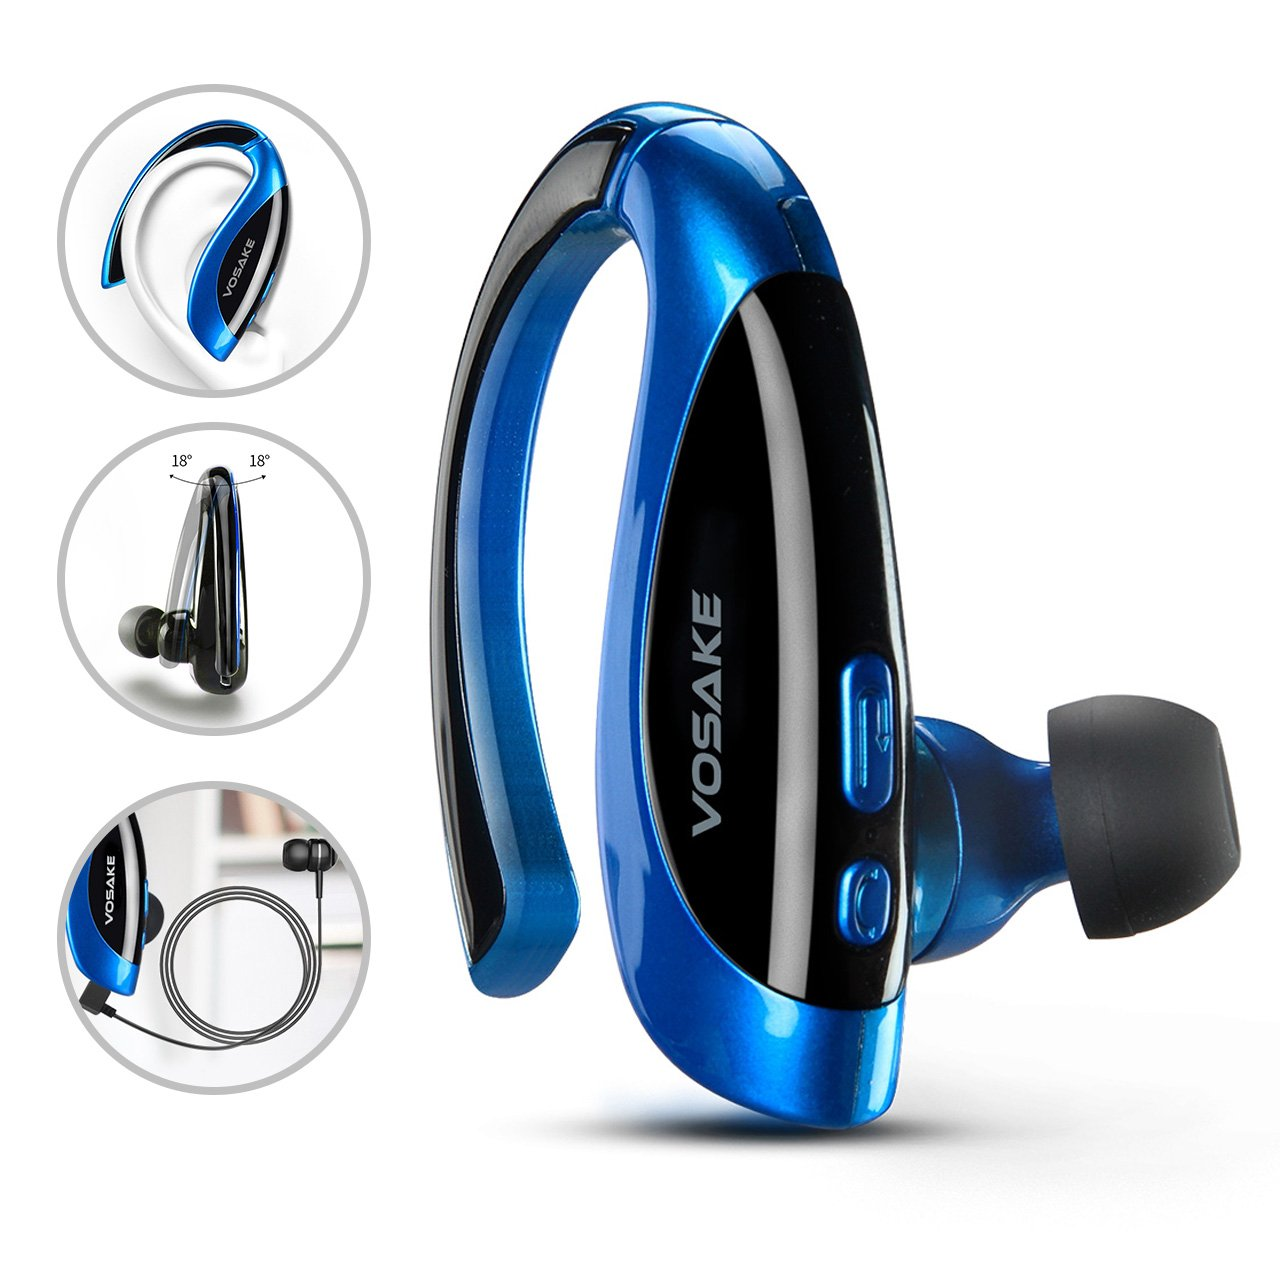 VOSAKE Bluetooth Headset, Wrieless Earphones Hands-free Bluetooth Earpieces with Micphone and 5 Hrs Play Time for Running,Gym,Driving,Walking,Etc.(Blue/Black)